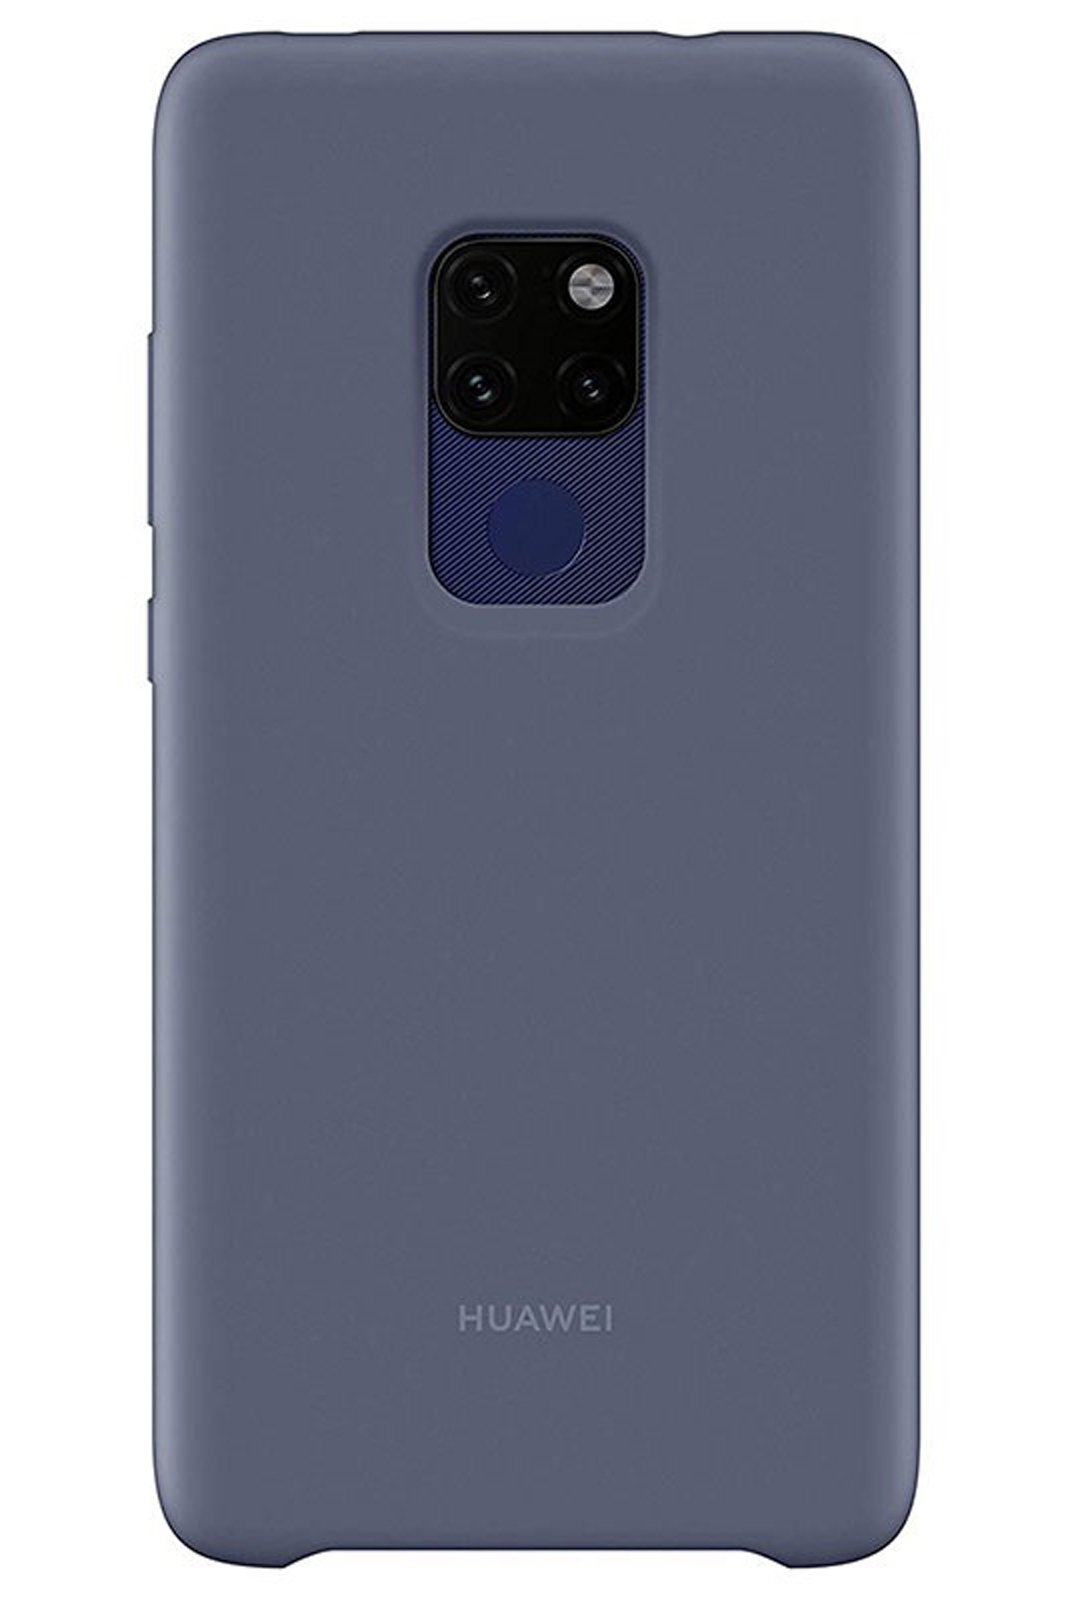 sports shoes 59b7e d474c Details about Official Huawei Mate 20 Light Blue Silicone Car Case -  51992617